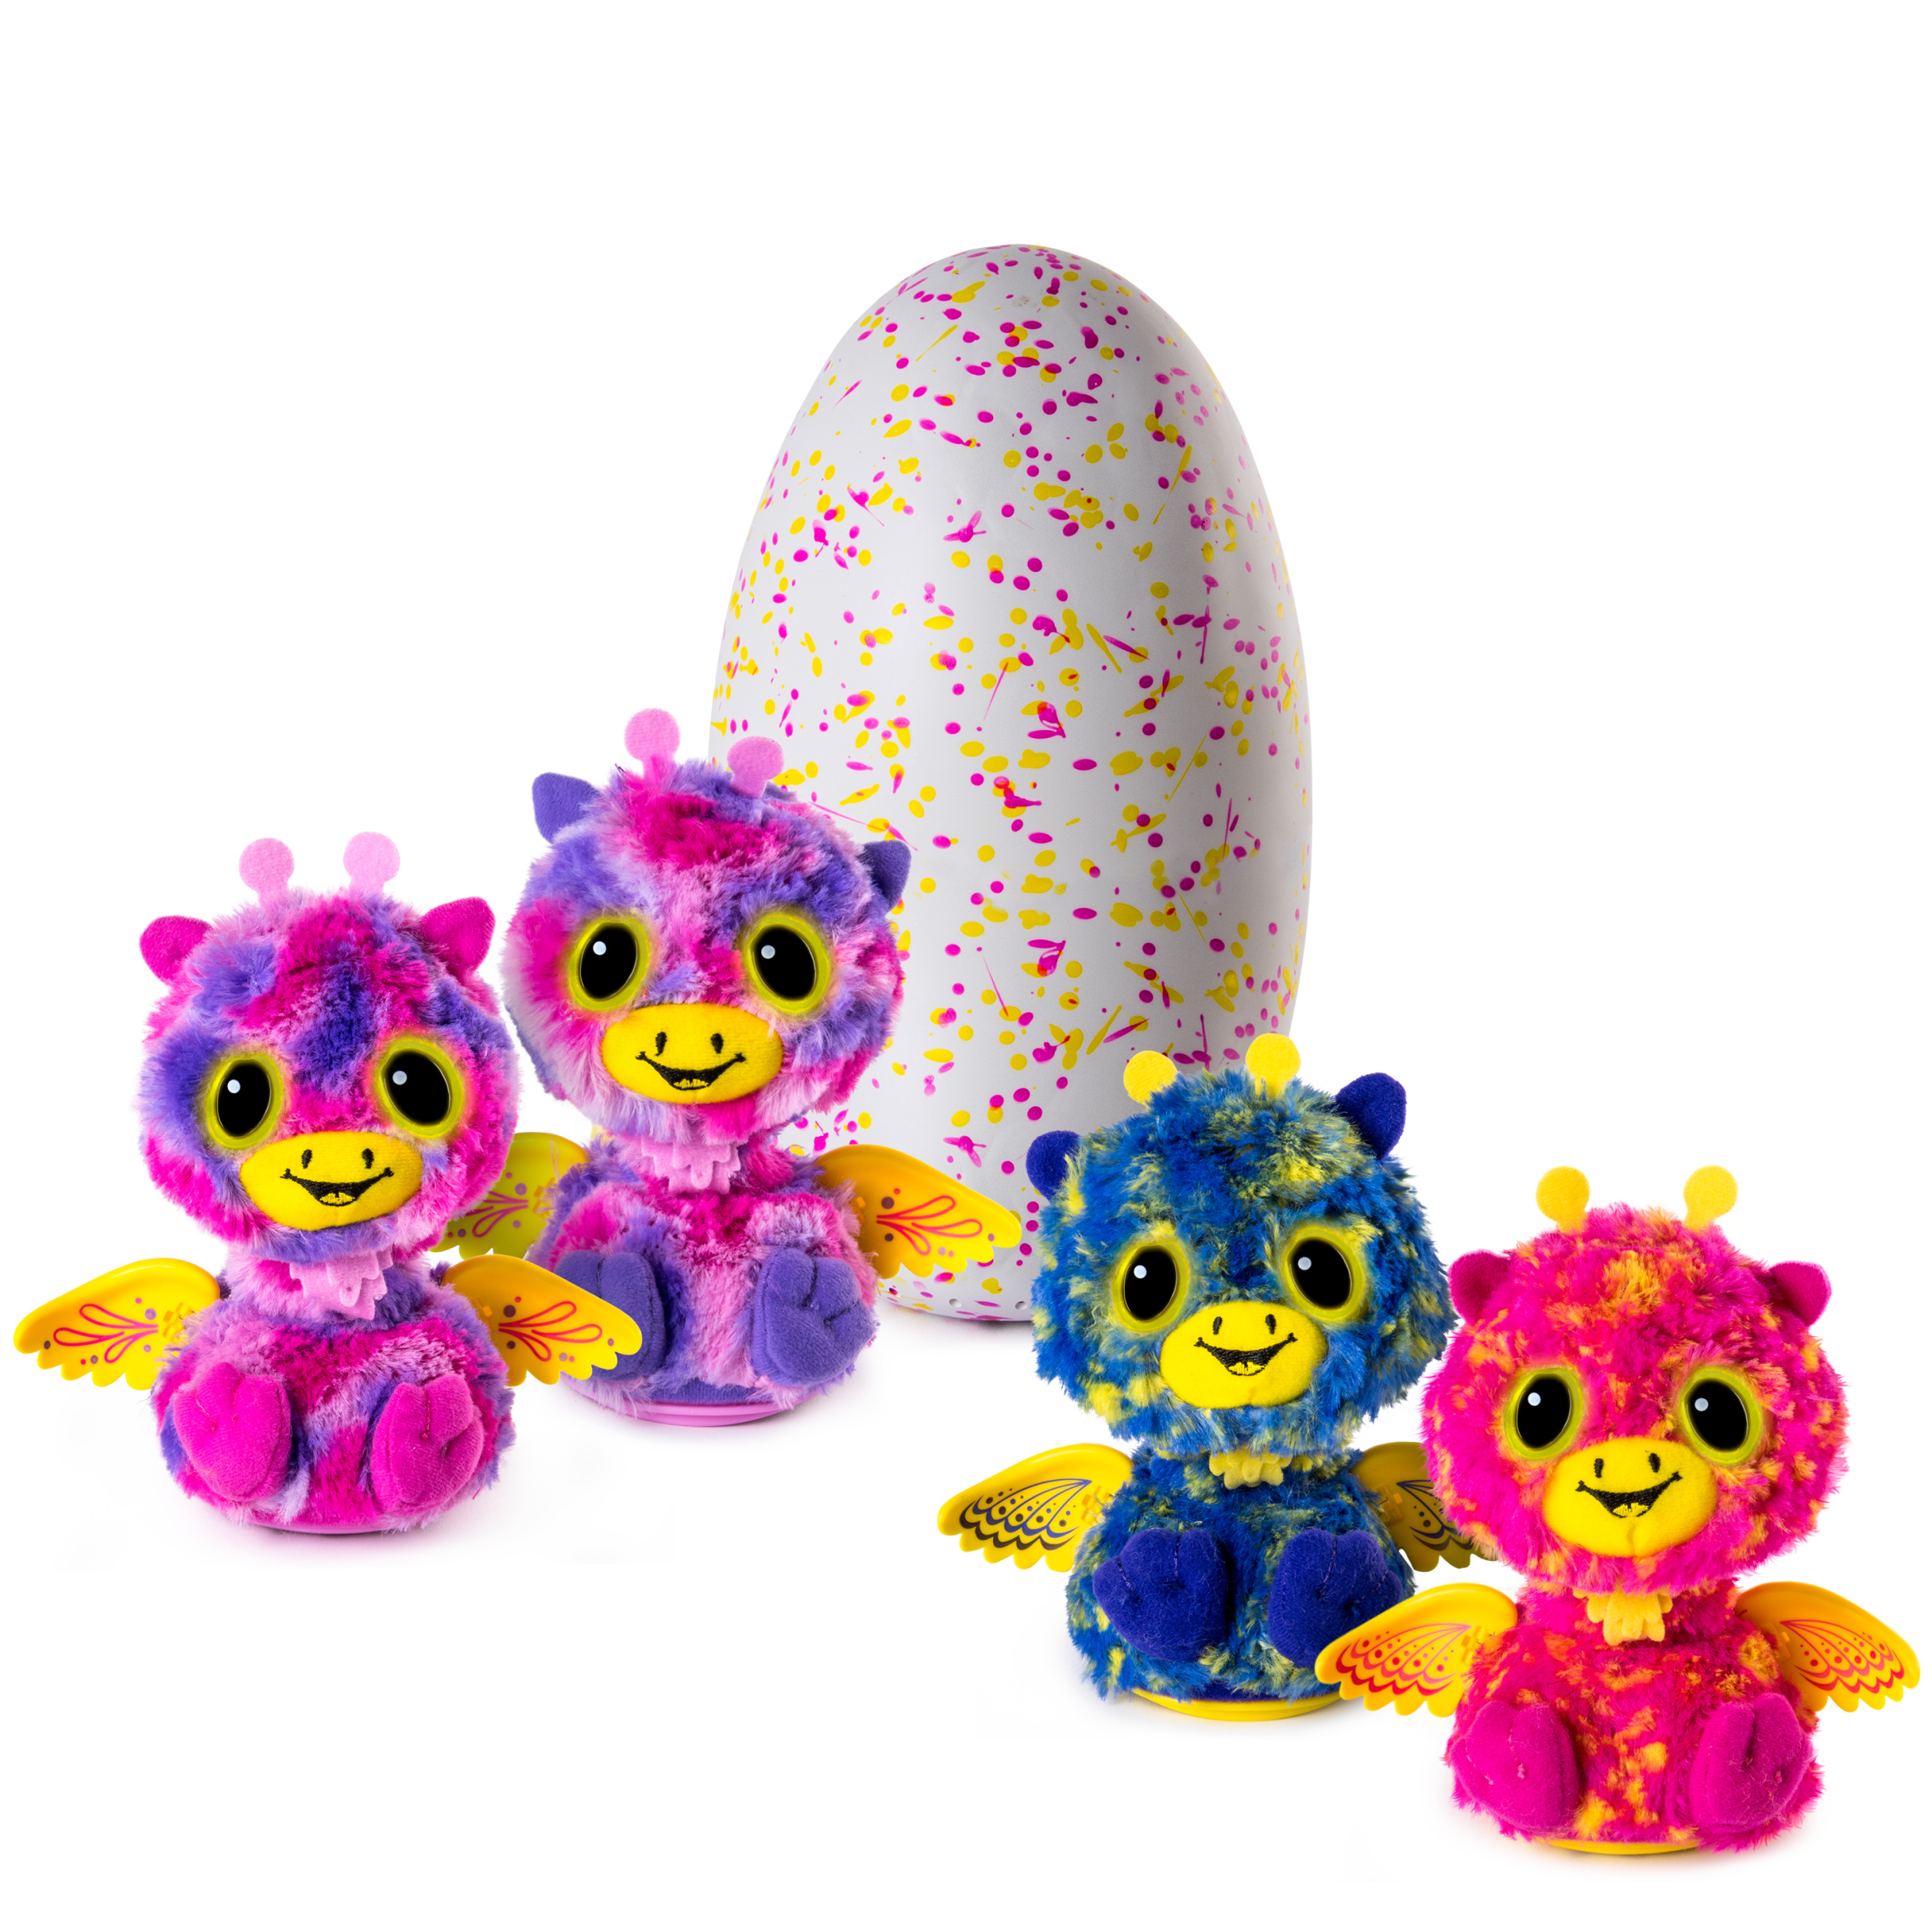 Hatchimals Surprise ‐ Giraven ‐ Hatching Egg with Surprise Twin Interactive Hatchimal Creatures by Spin Master